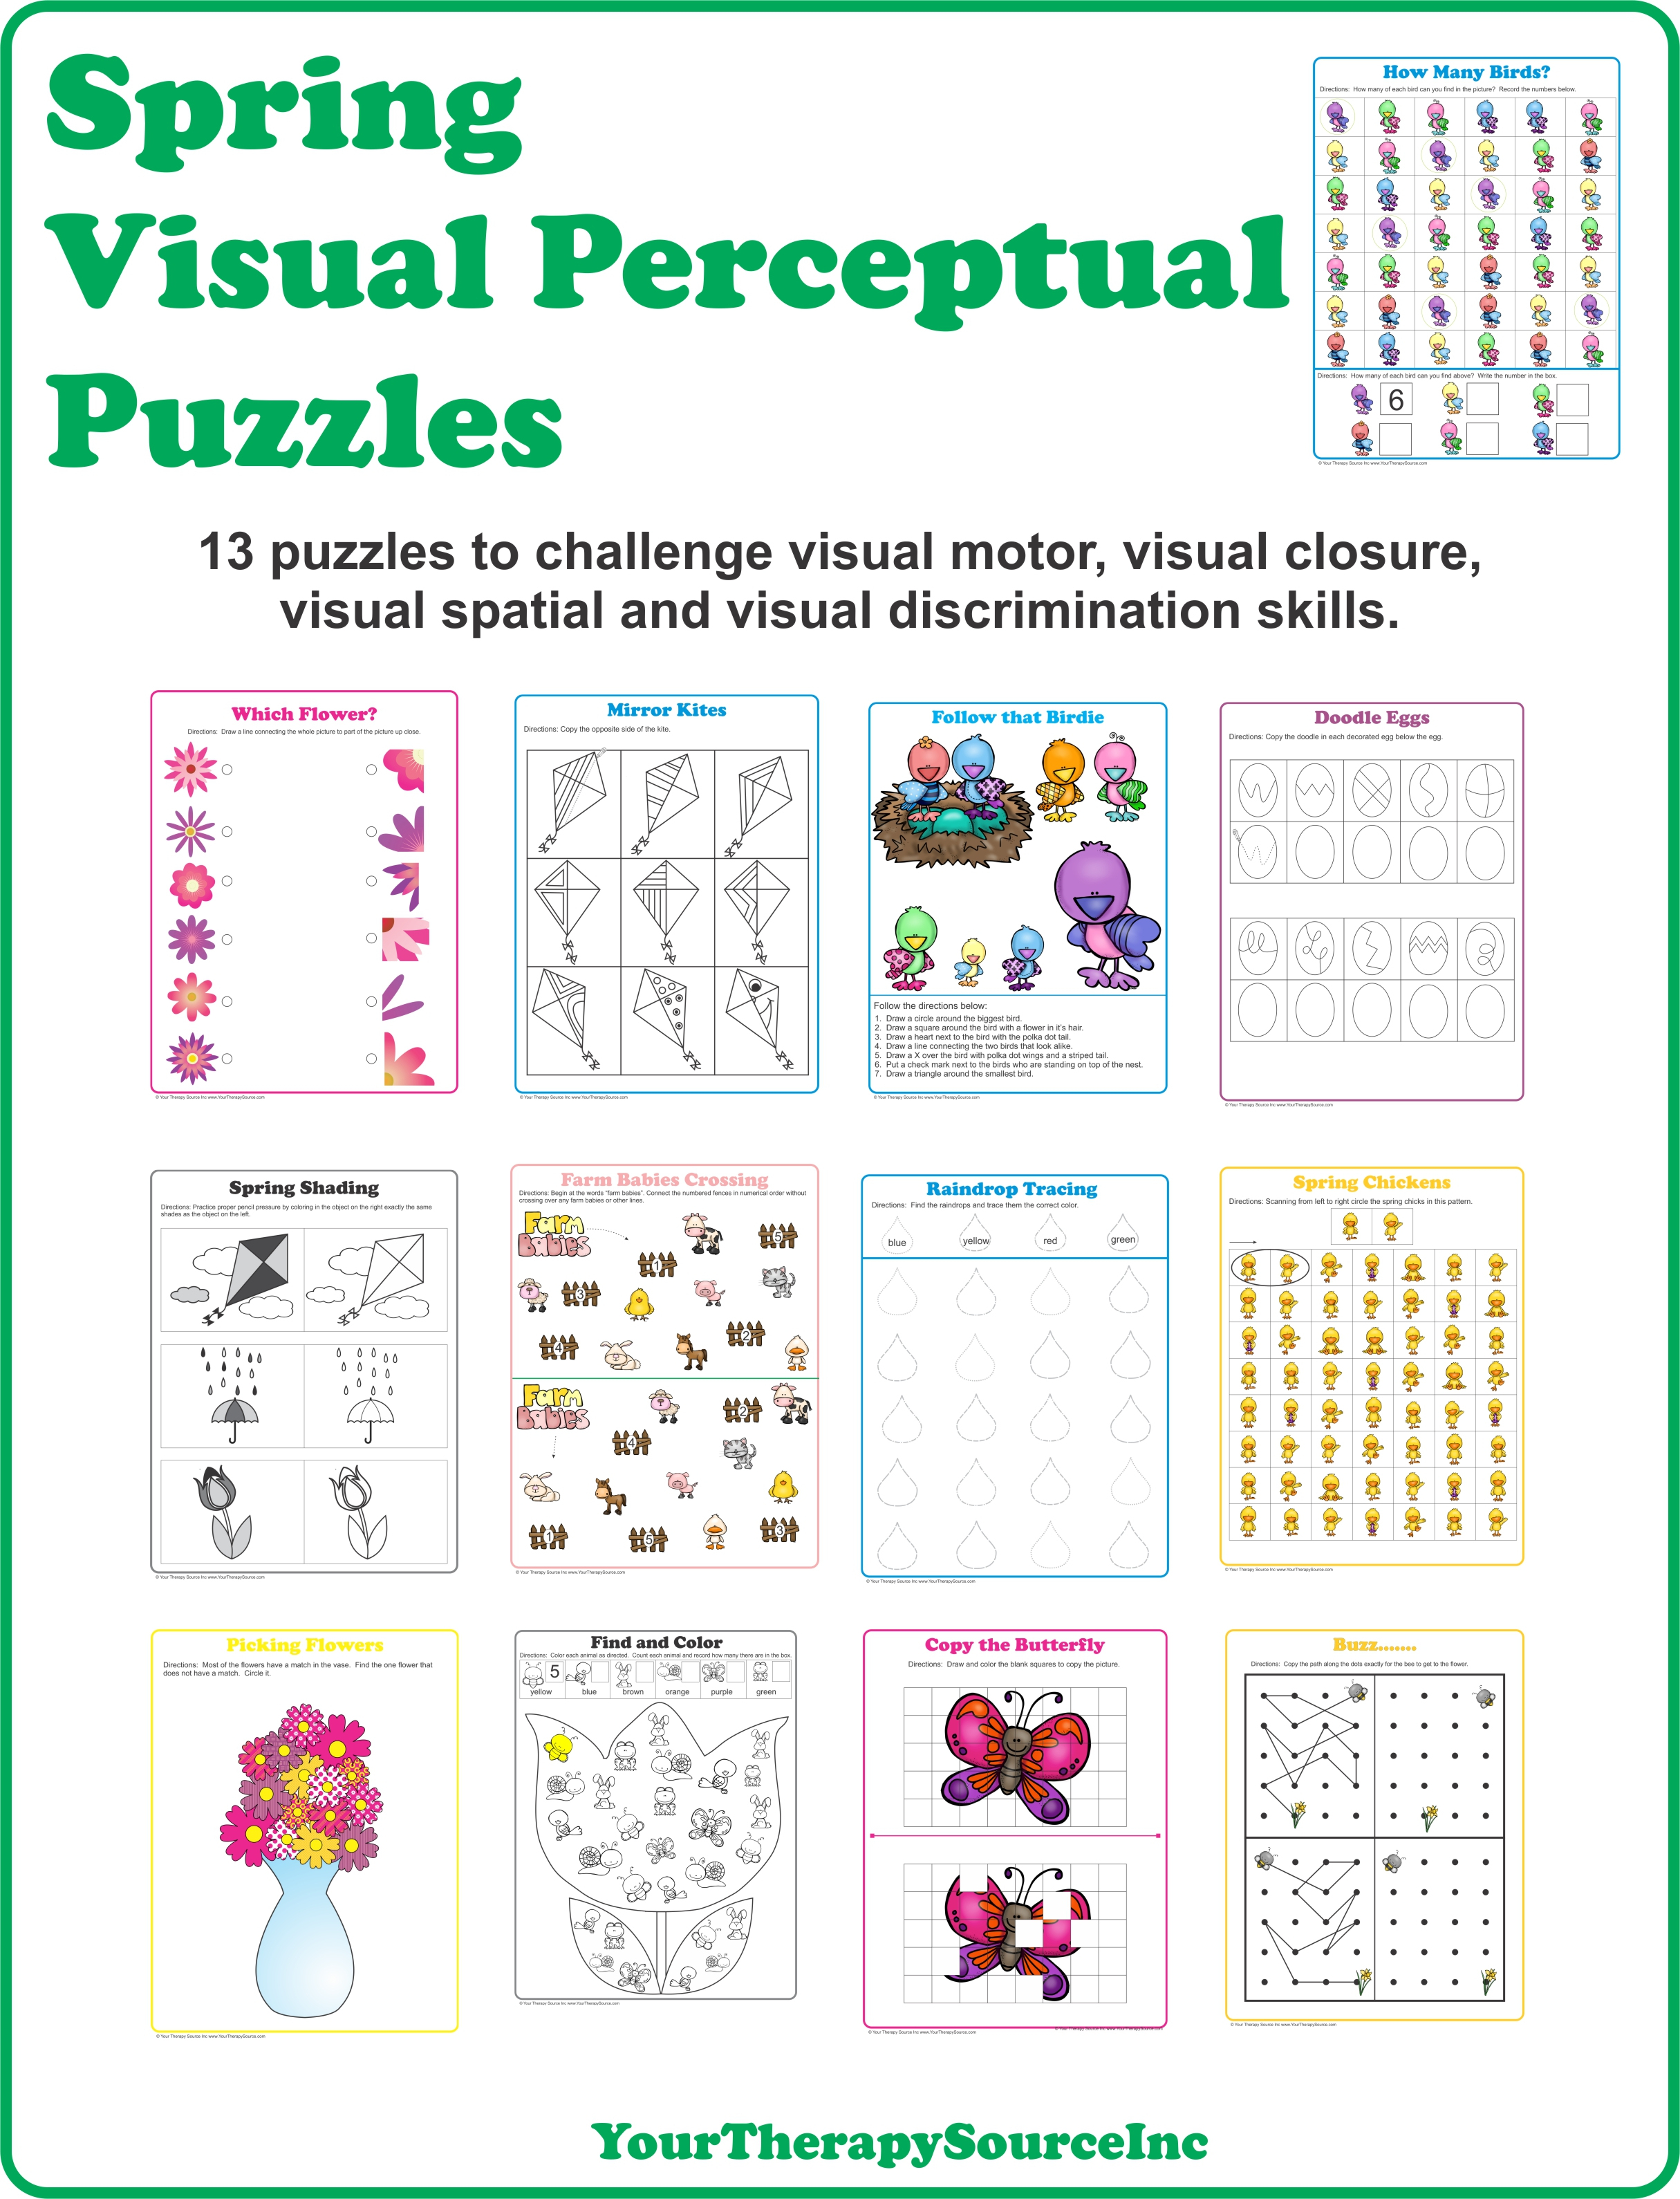 Spring Visual Perceptual Puzzles - Your Therapy Source - Printable Spring Puzzles